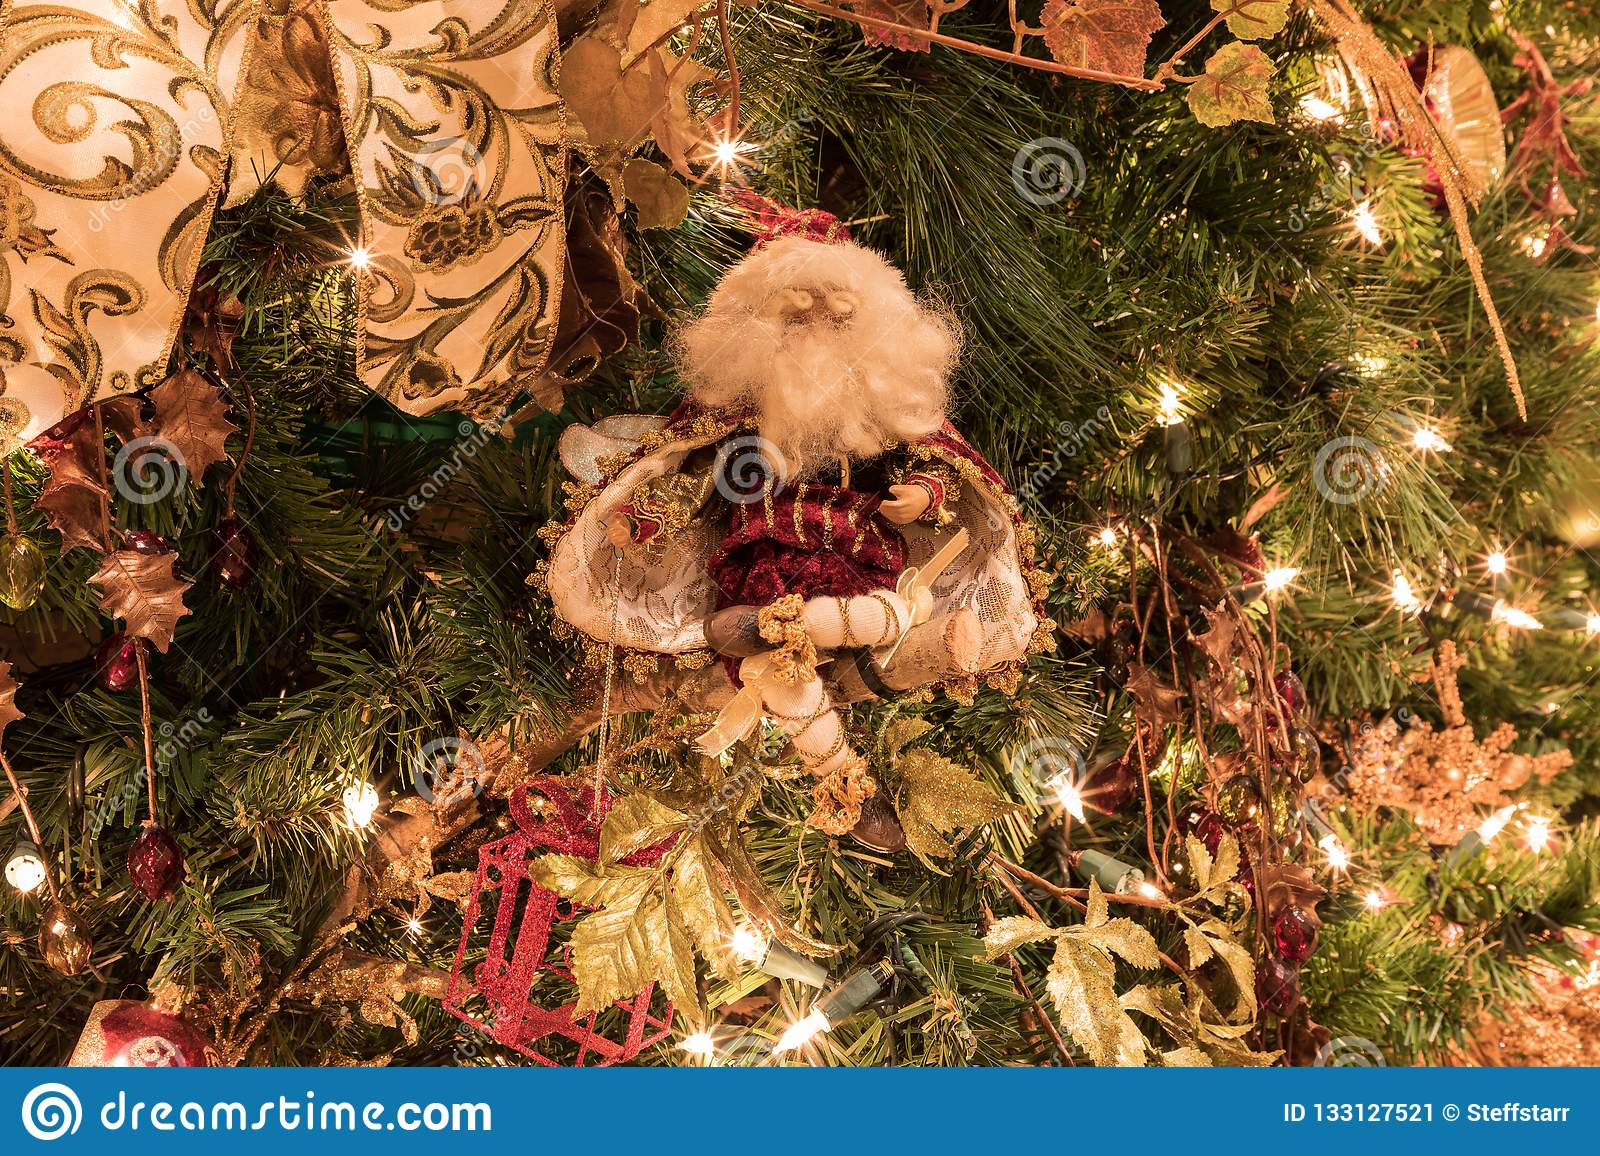 The Christmas Clause.Santa Clause Ornament On A Christmas Tree With White Lights